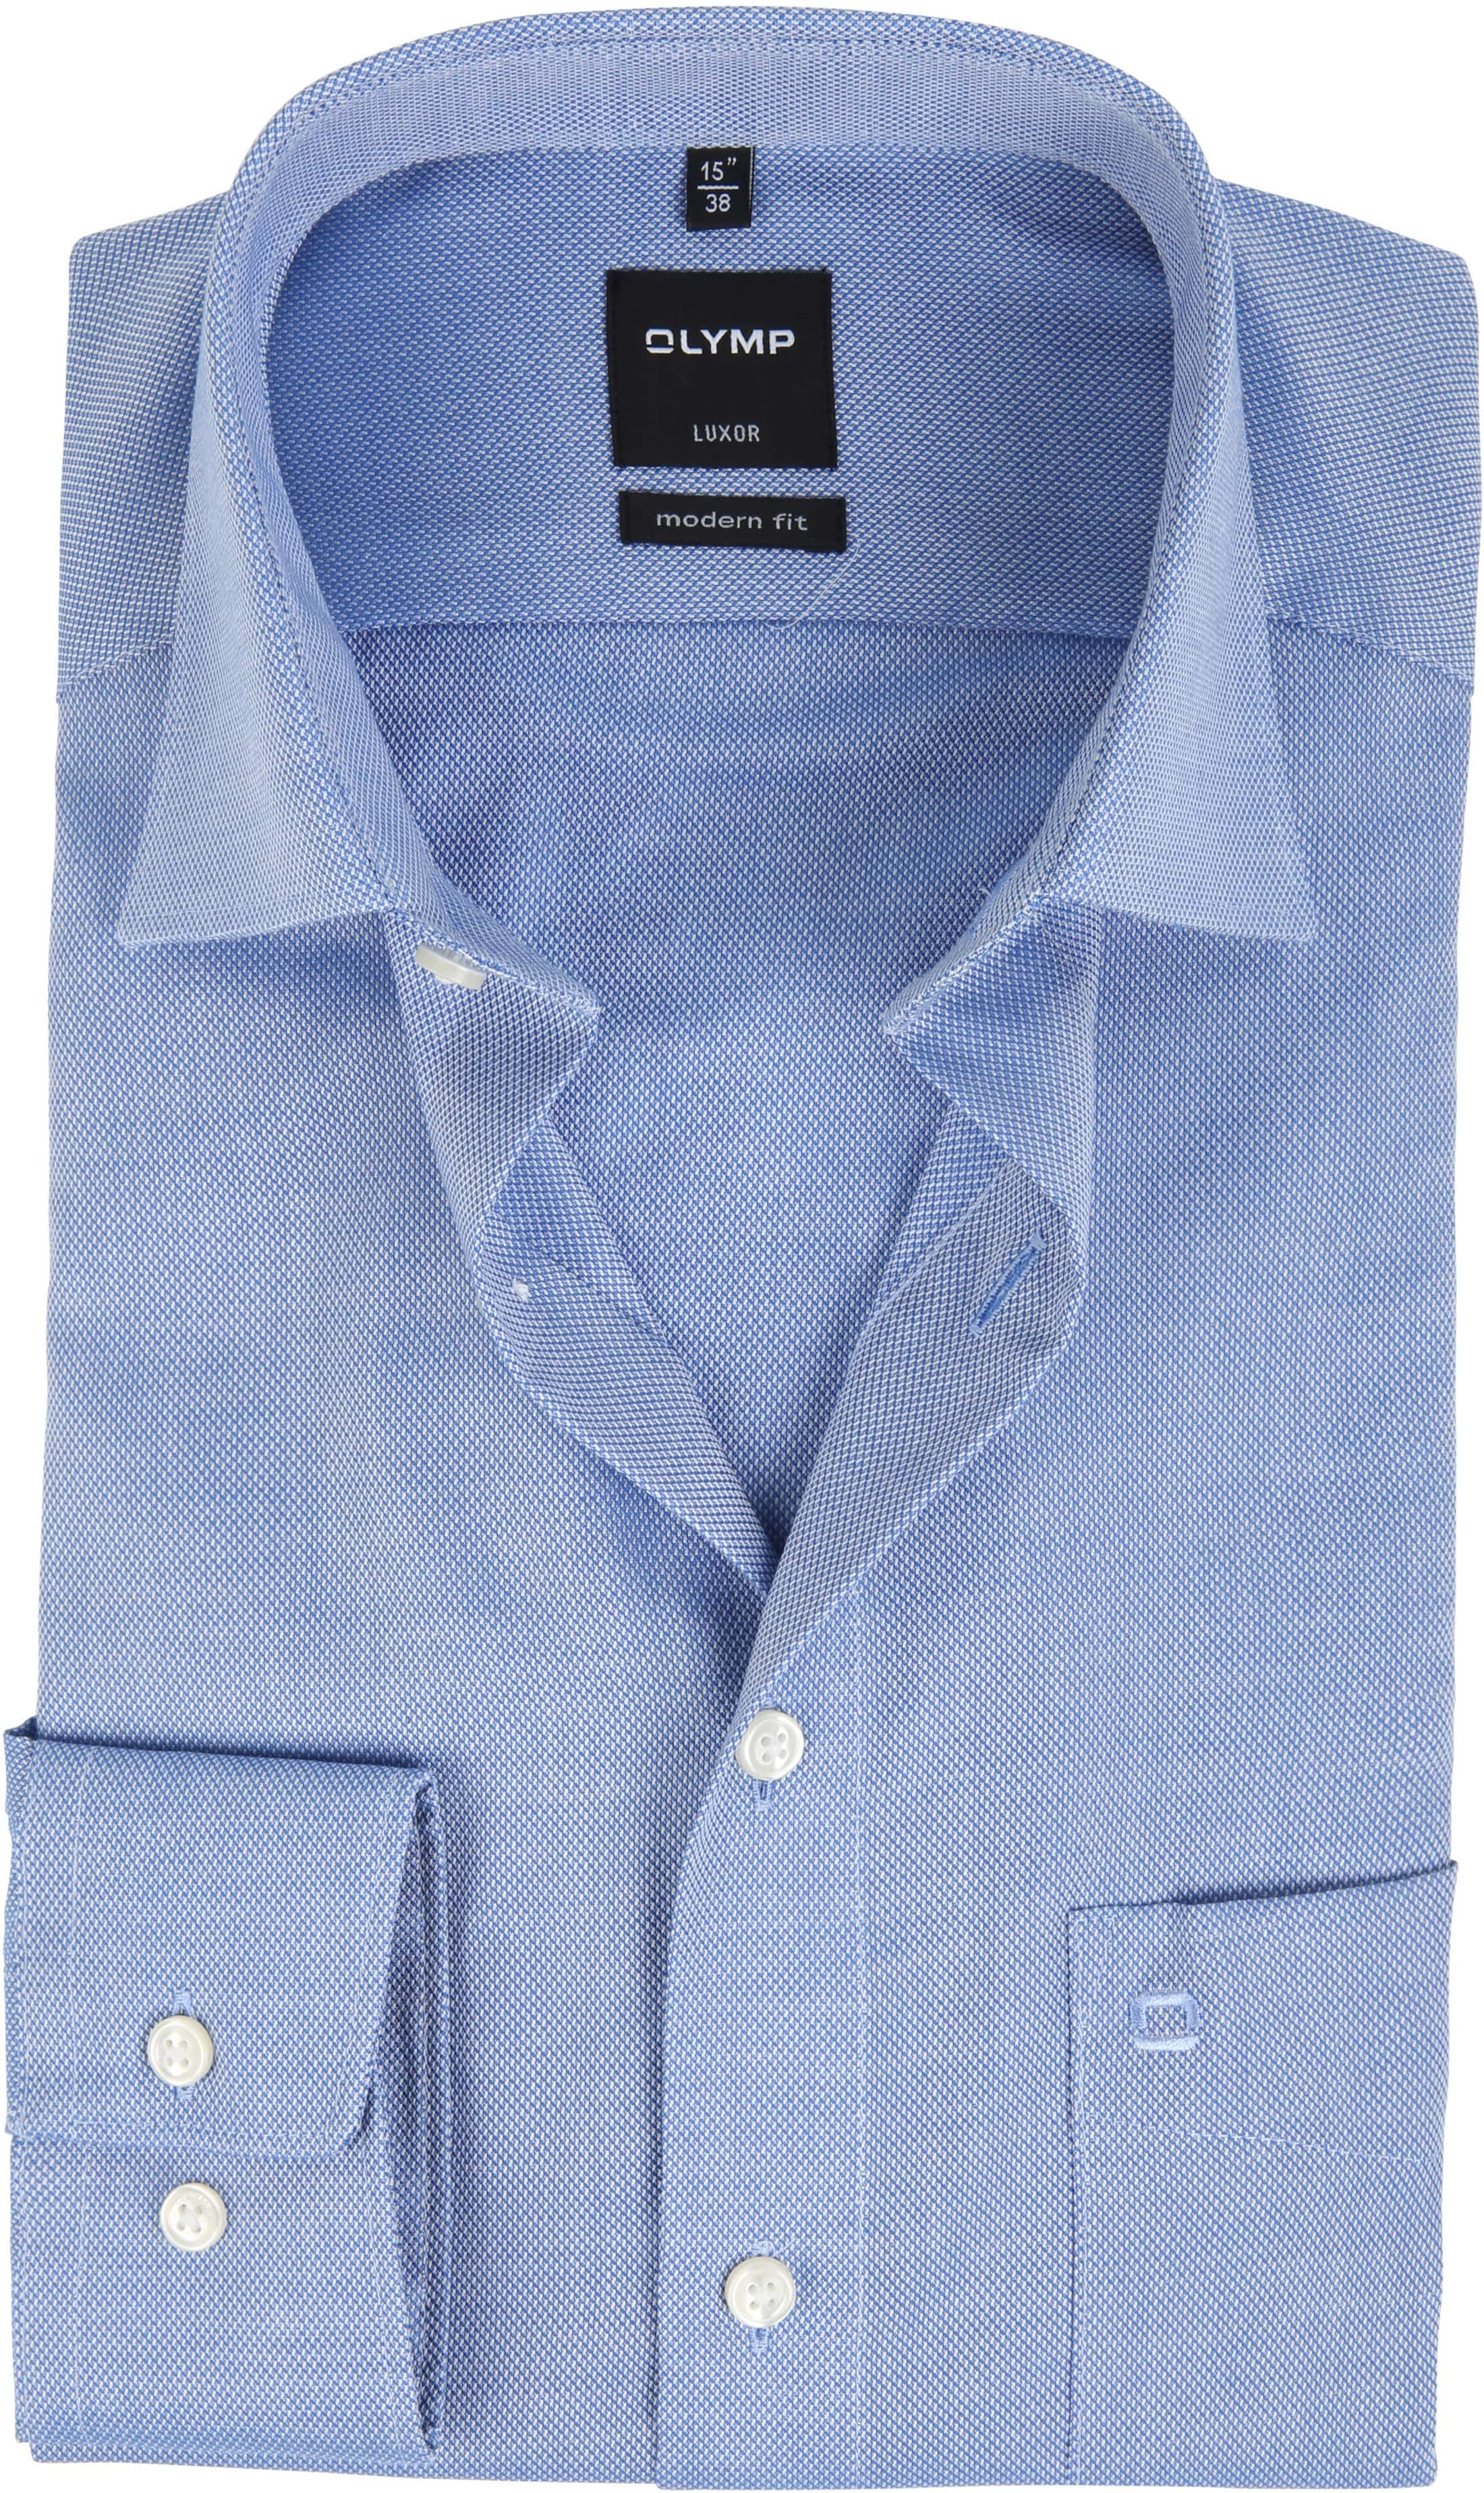 Olymp Luxor Non Iron Shirt Modern Fit Blue foto 0